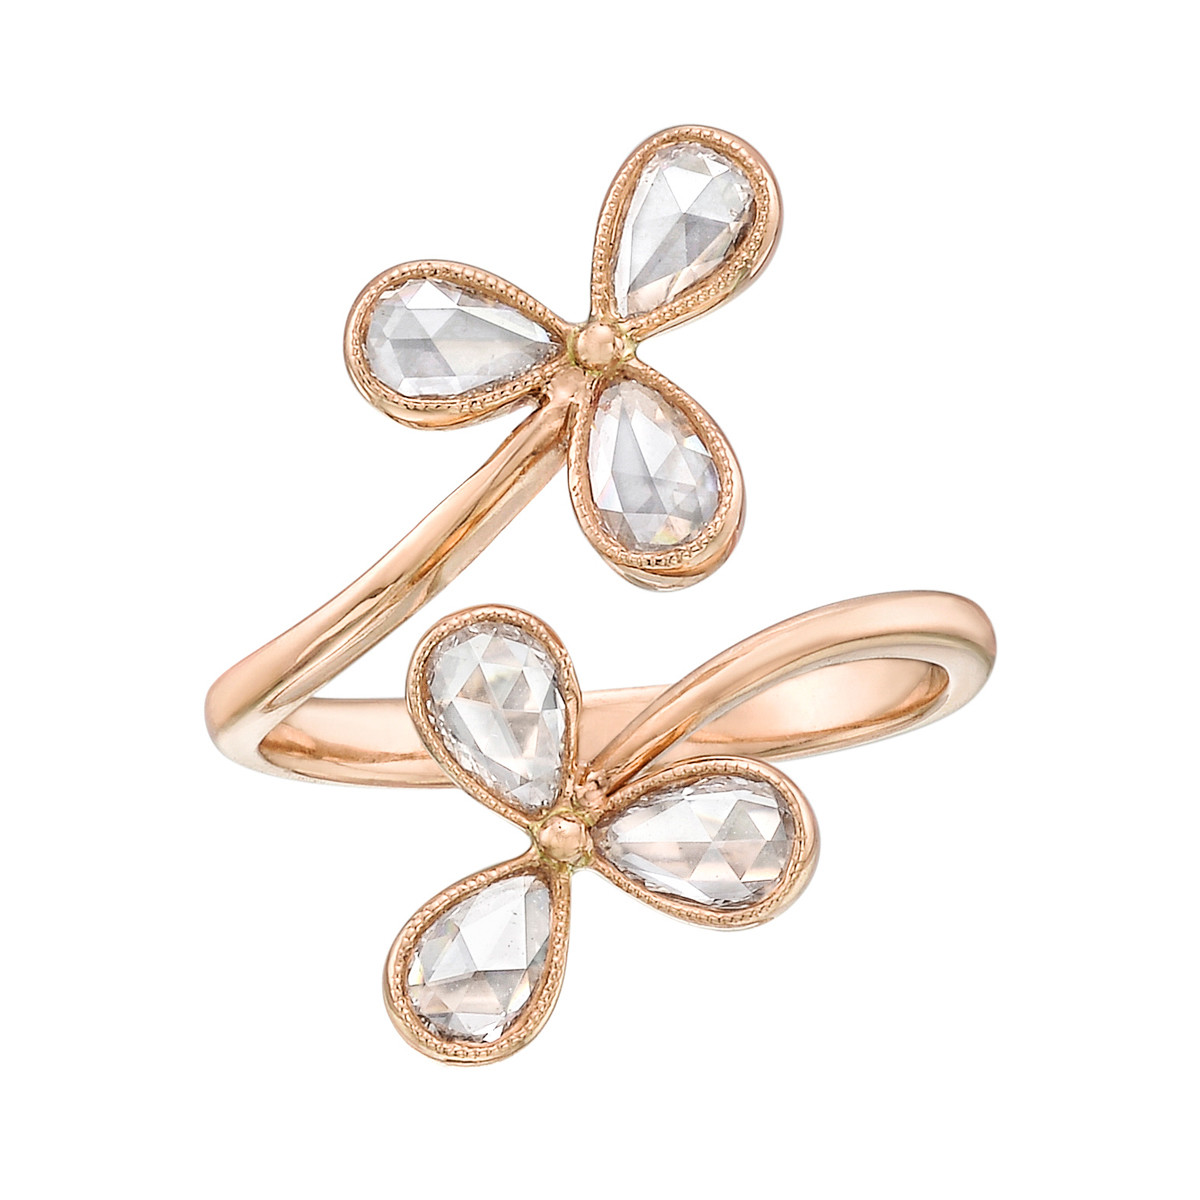 18k Pink Gold & Diamond Flower Bypass Ring